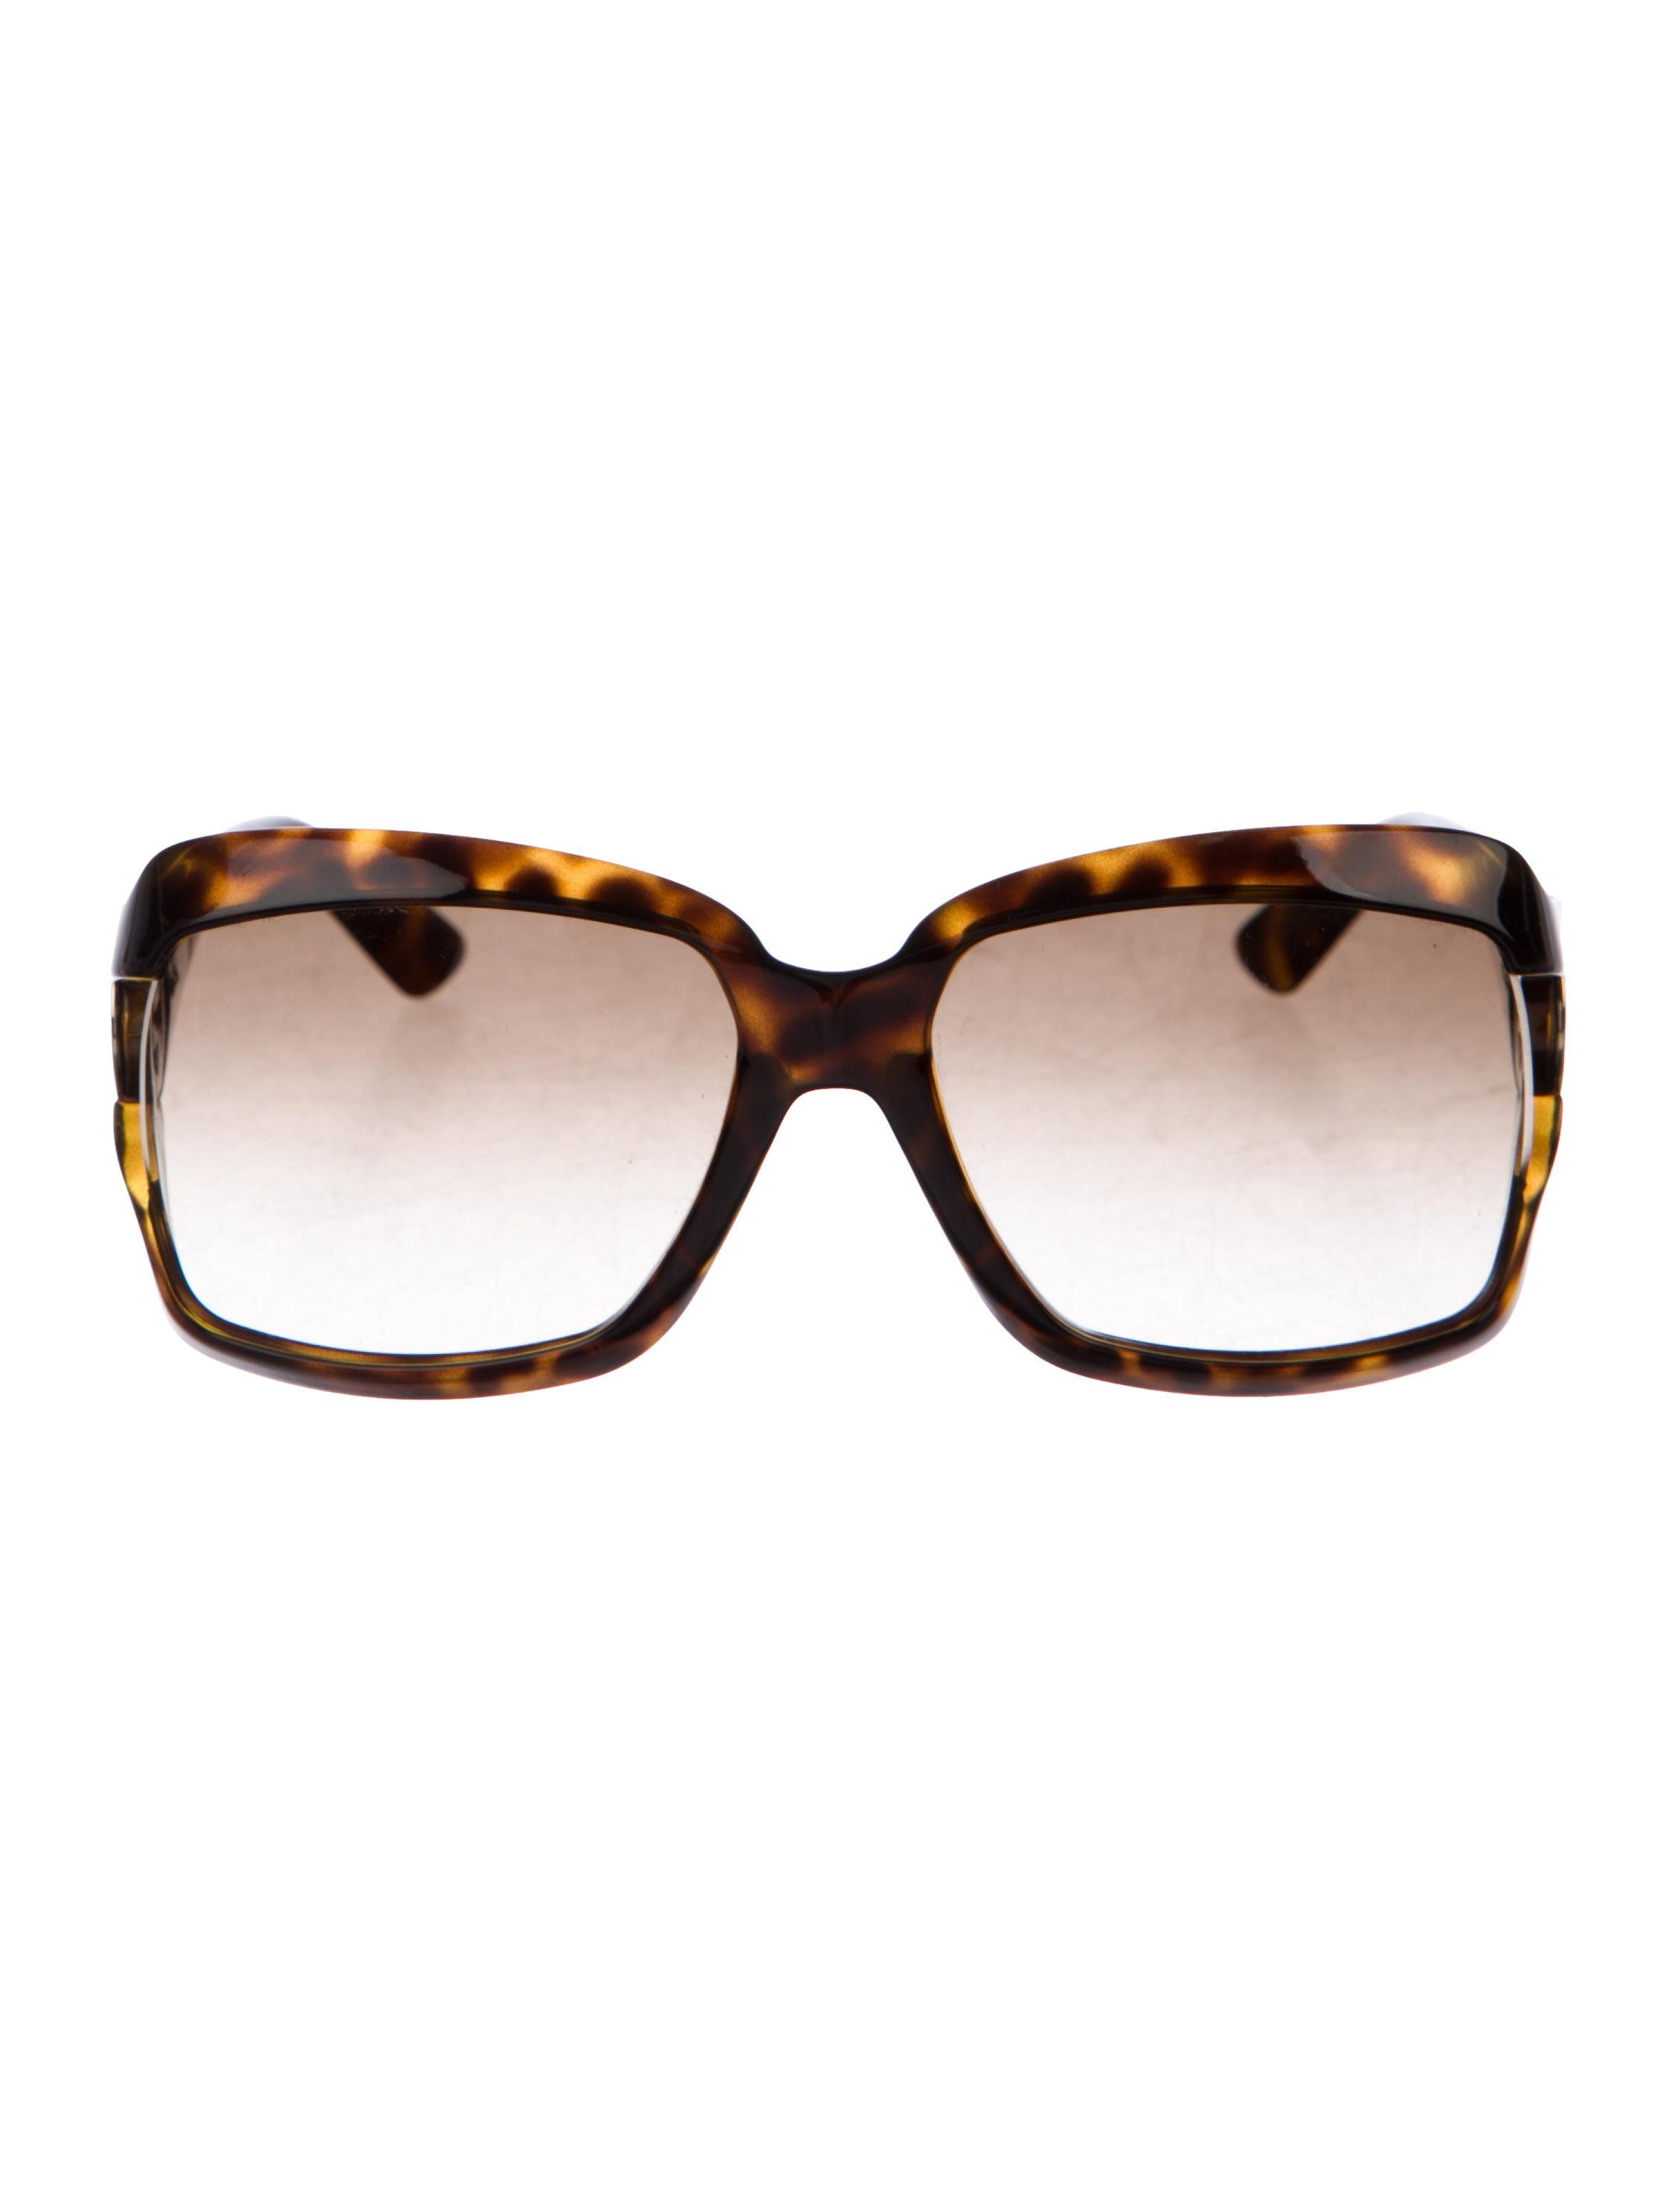 71a2c8603c6 Brown tortoiseshell acetate Gucci sunglasses with gold-tone interlocking GG  at temples and gradient lenses. Includes case.